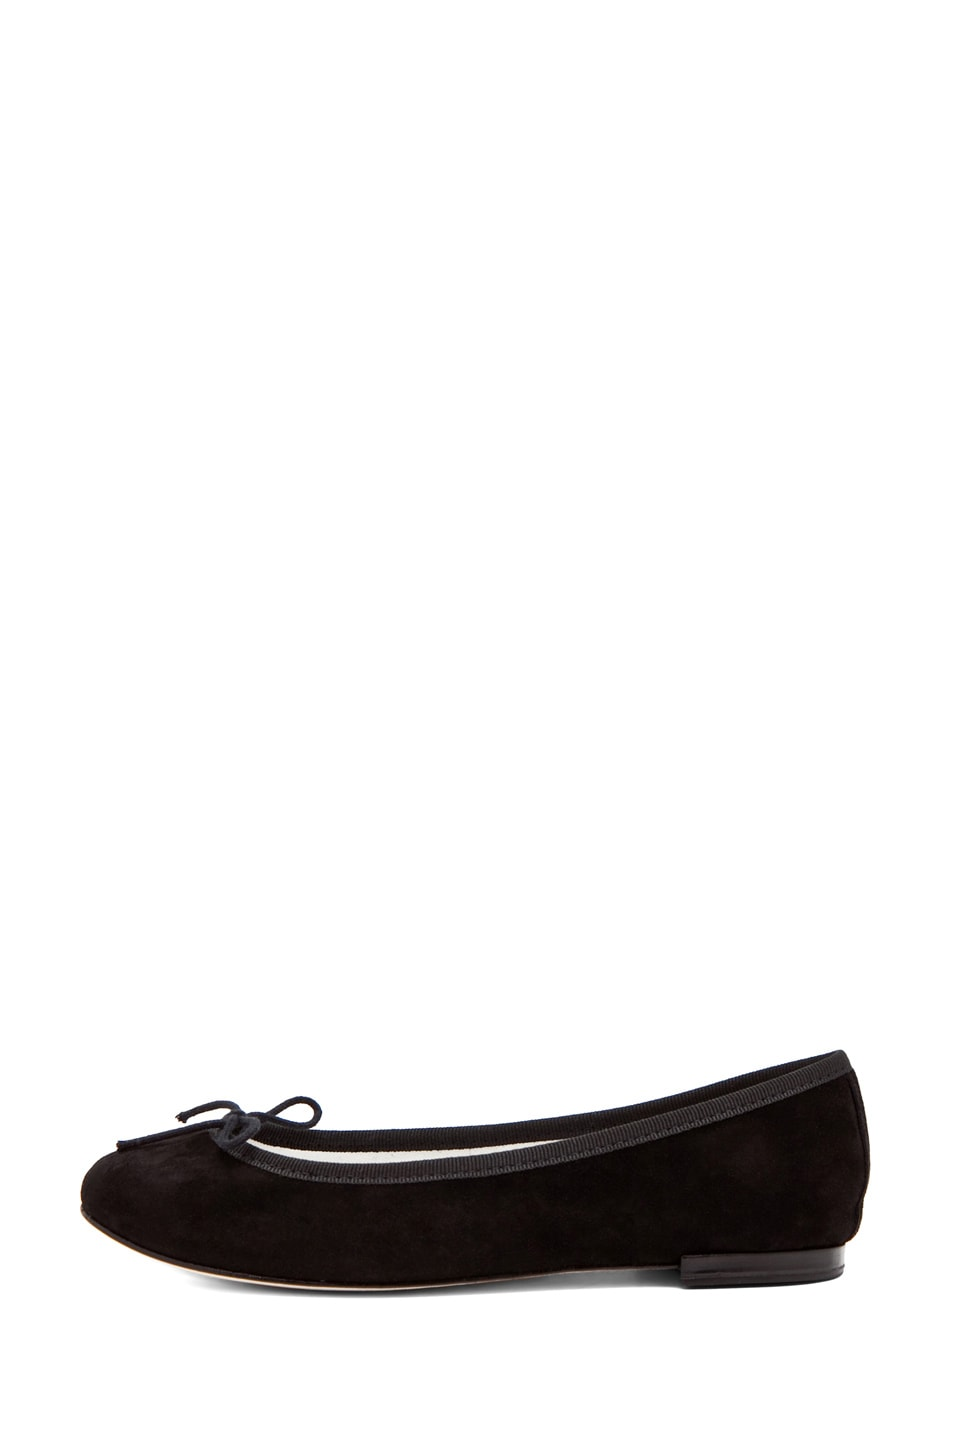 Image 1 of Repetto Suede Flat in Black